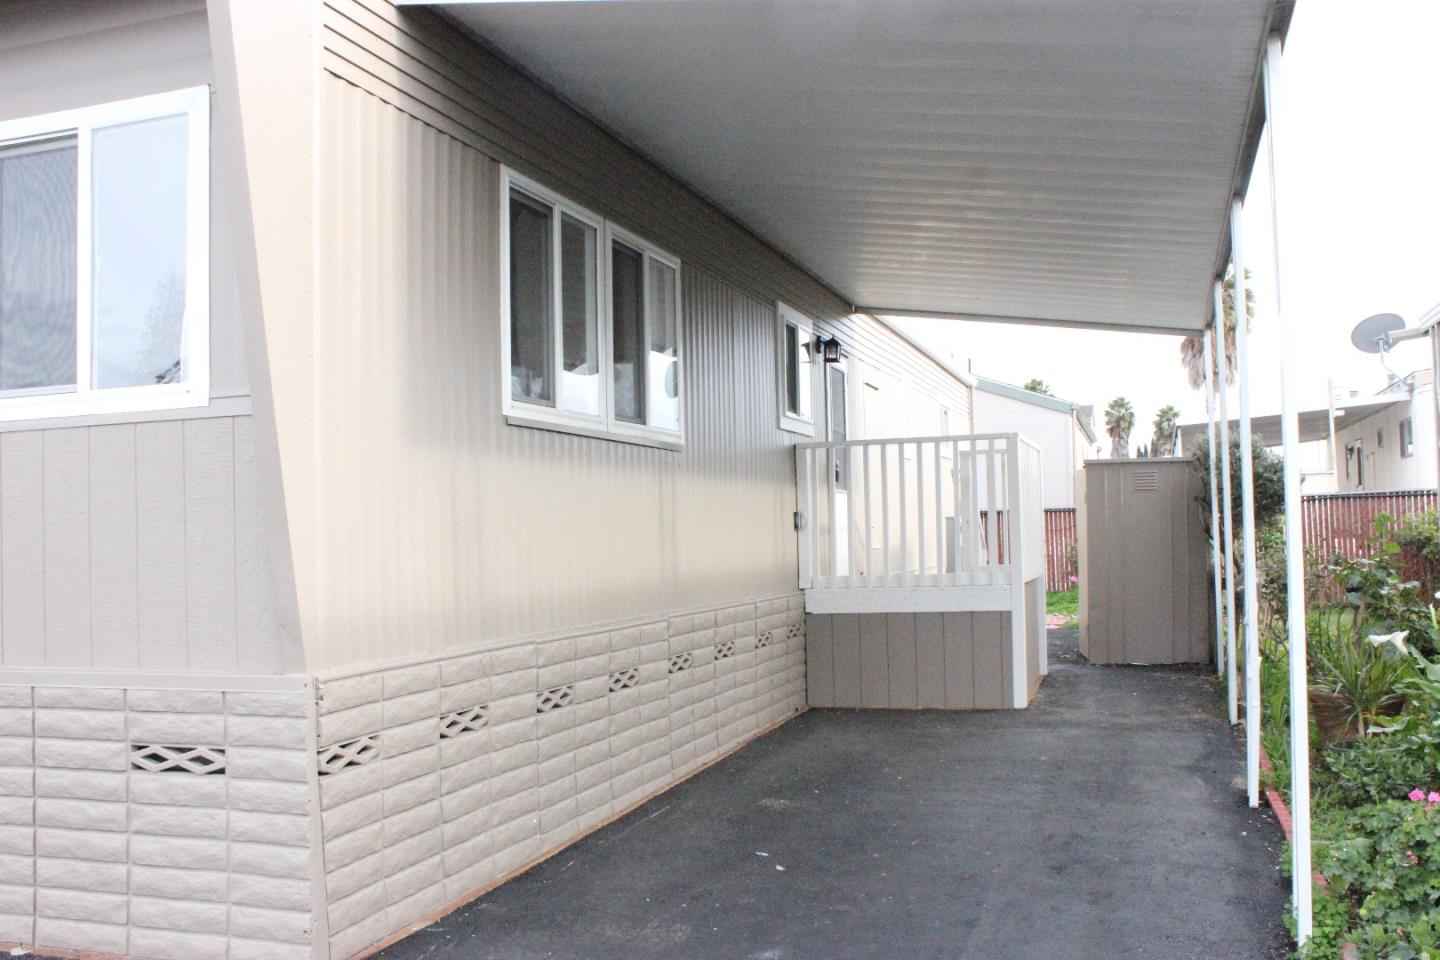 8282 Murray Avenue #102, Gilroy, CA 95020 $94,900 www.sharonarnold on weather in gilroy, luxury homes in gilroy, hotels in gilroy, real estate in gilroy,